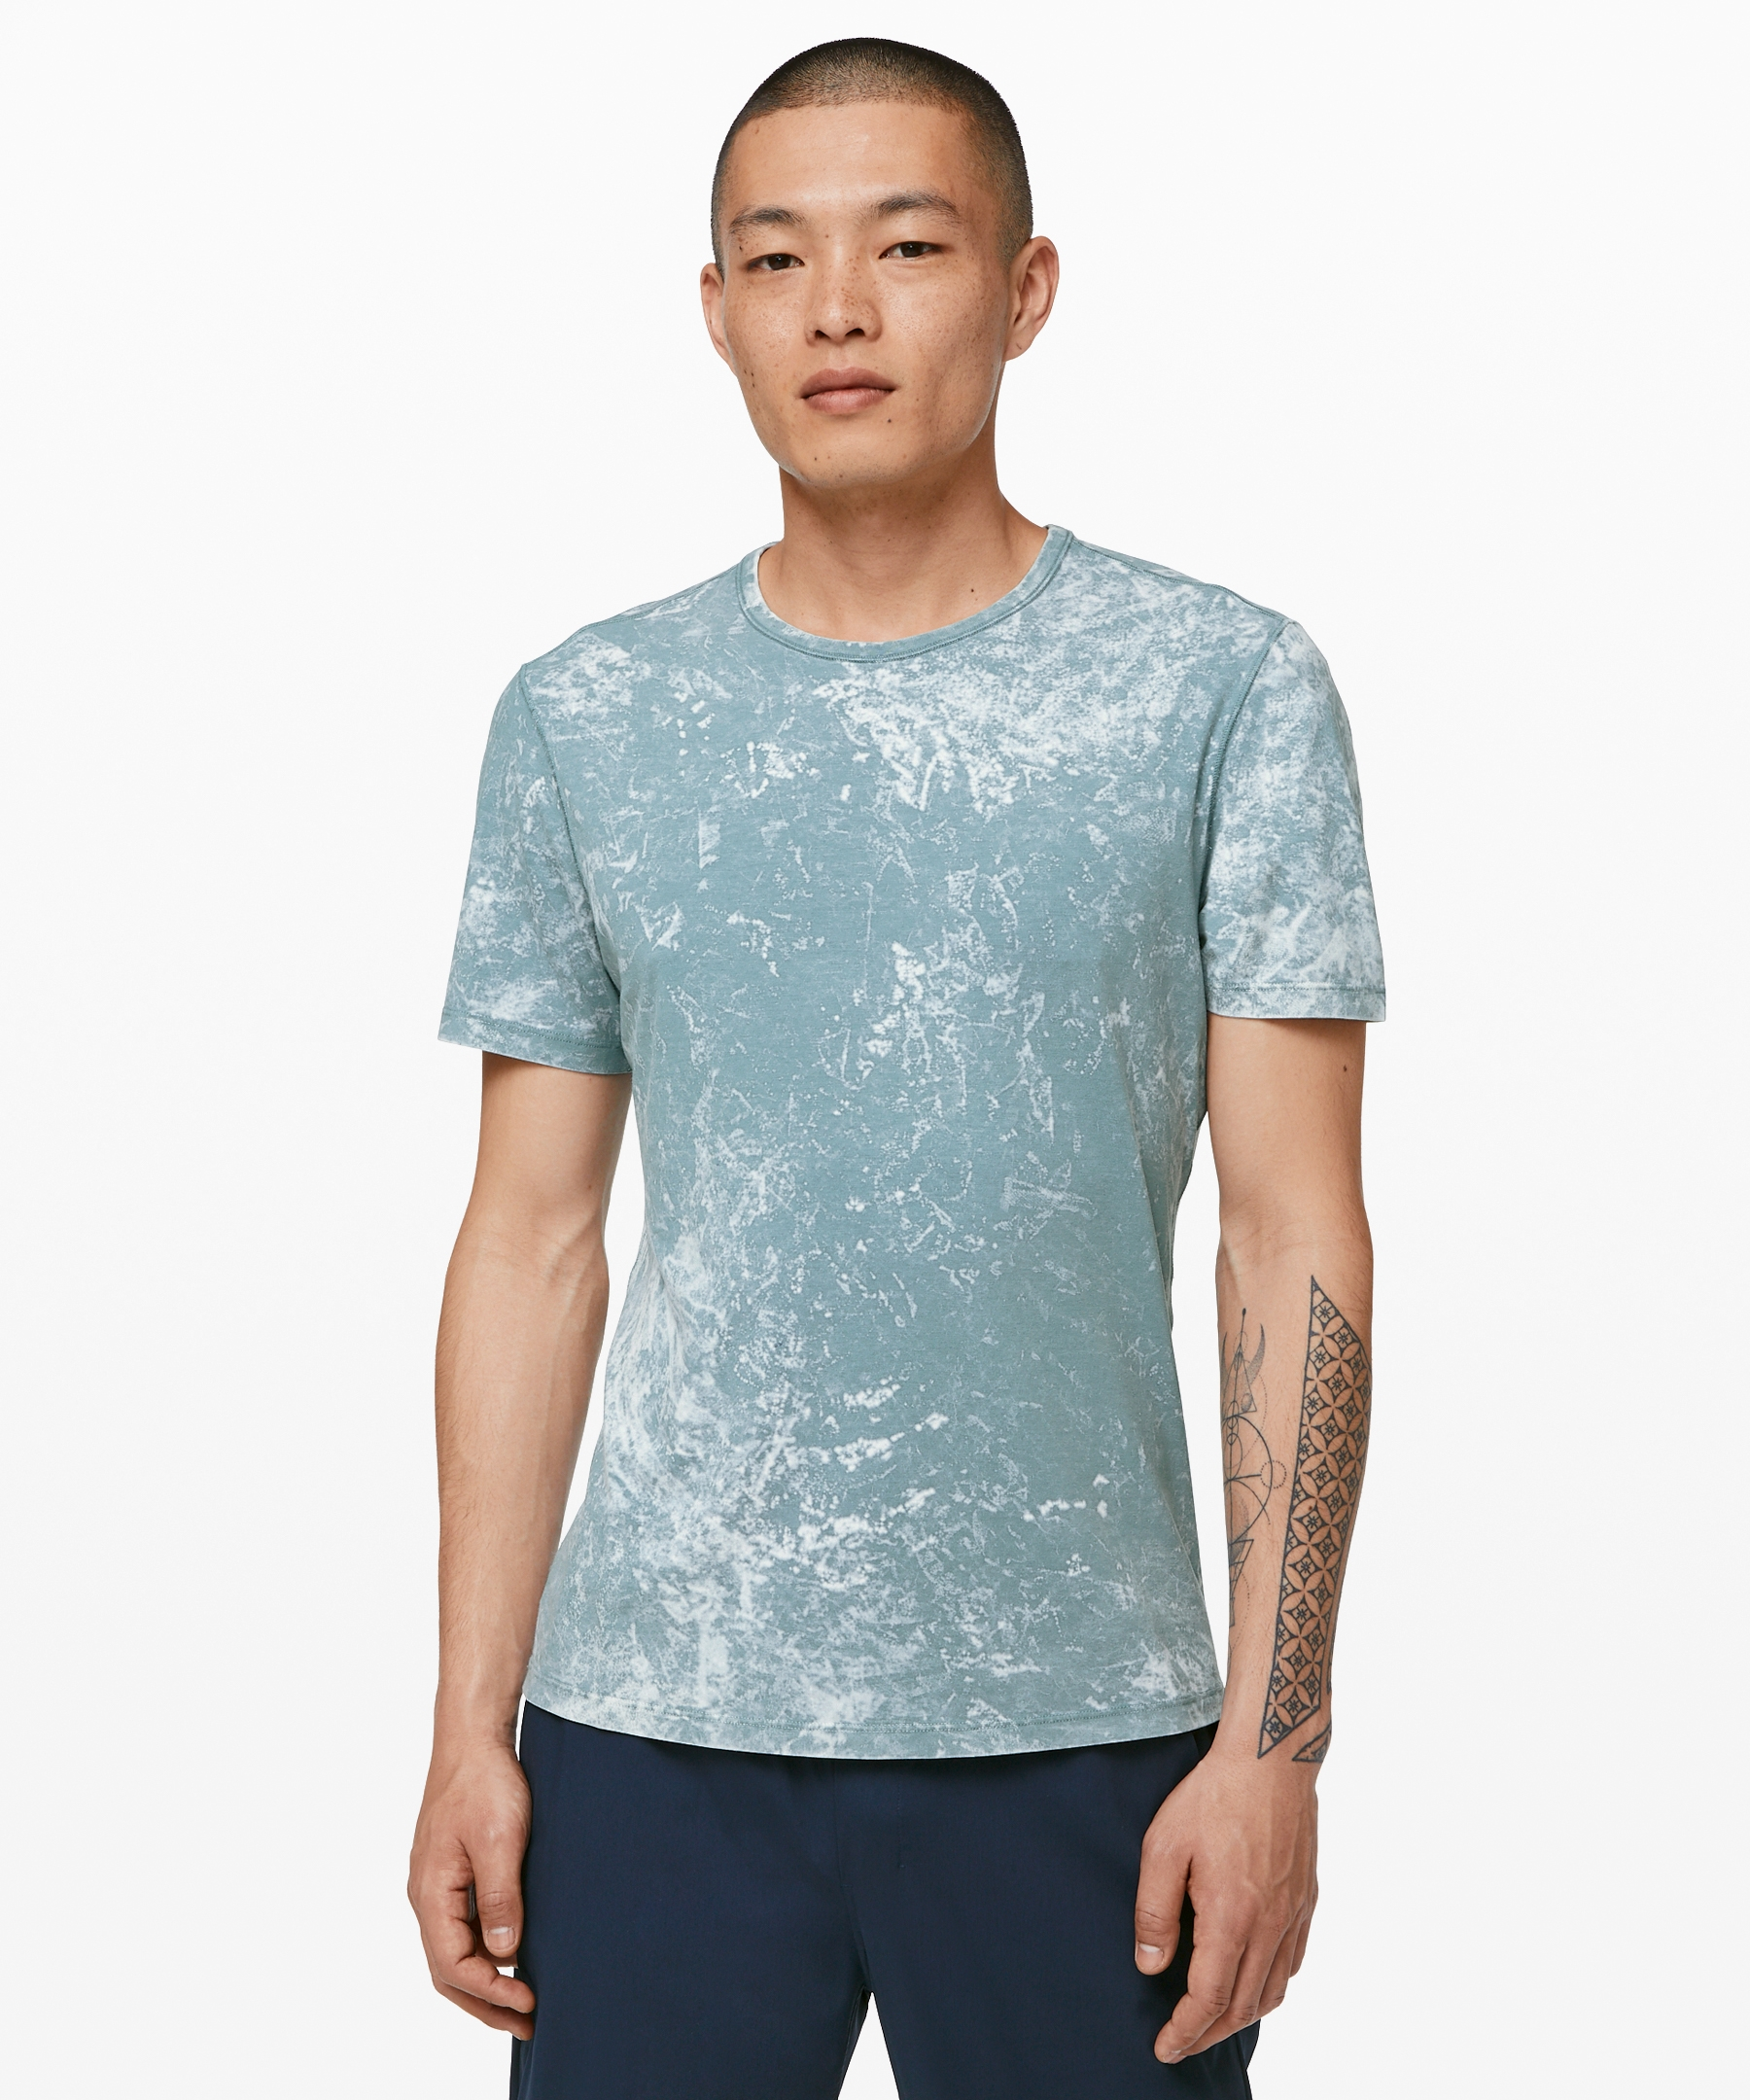 lululemon Men's 5 Year Basic Tee, Cloudy Wash Aquatic